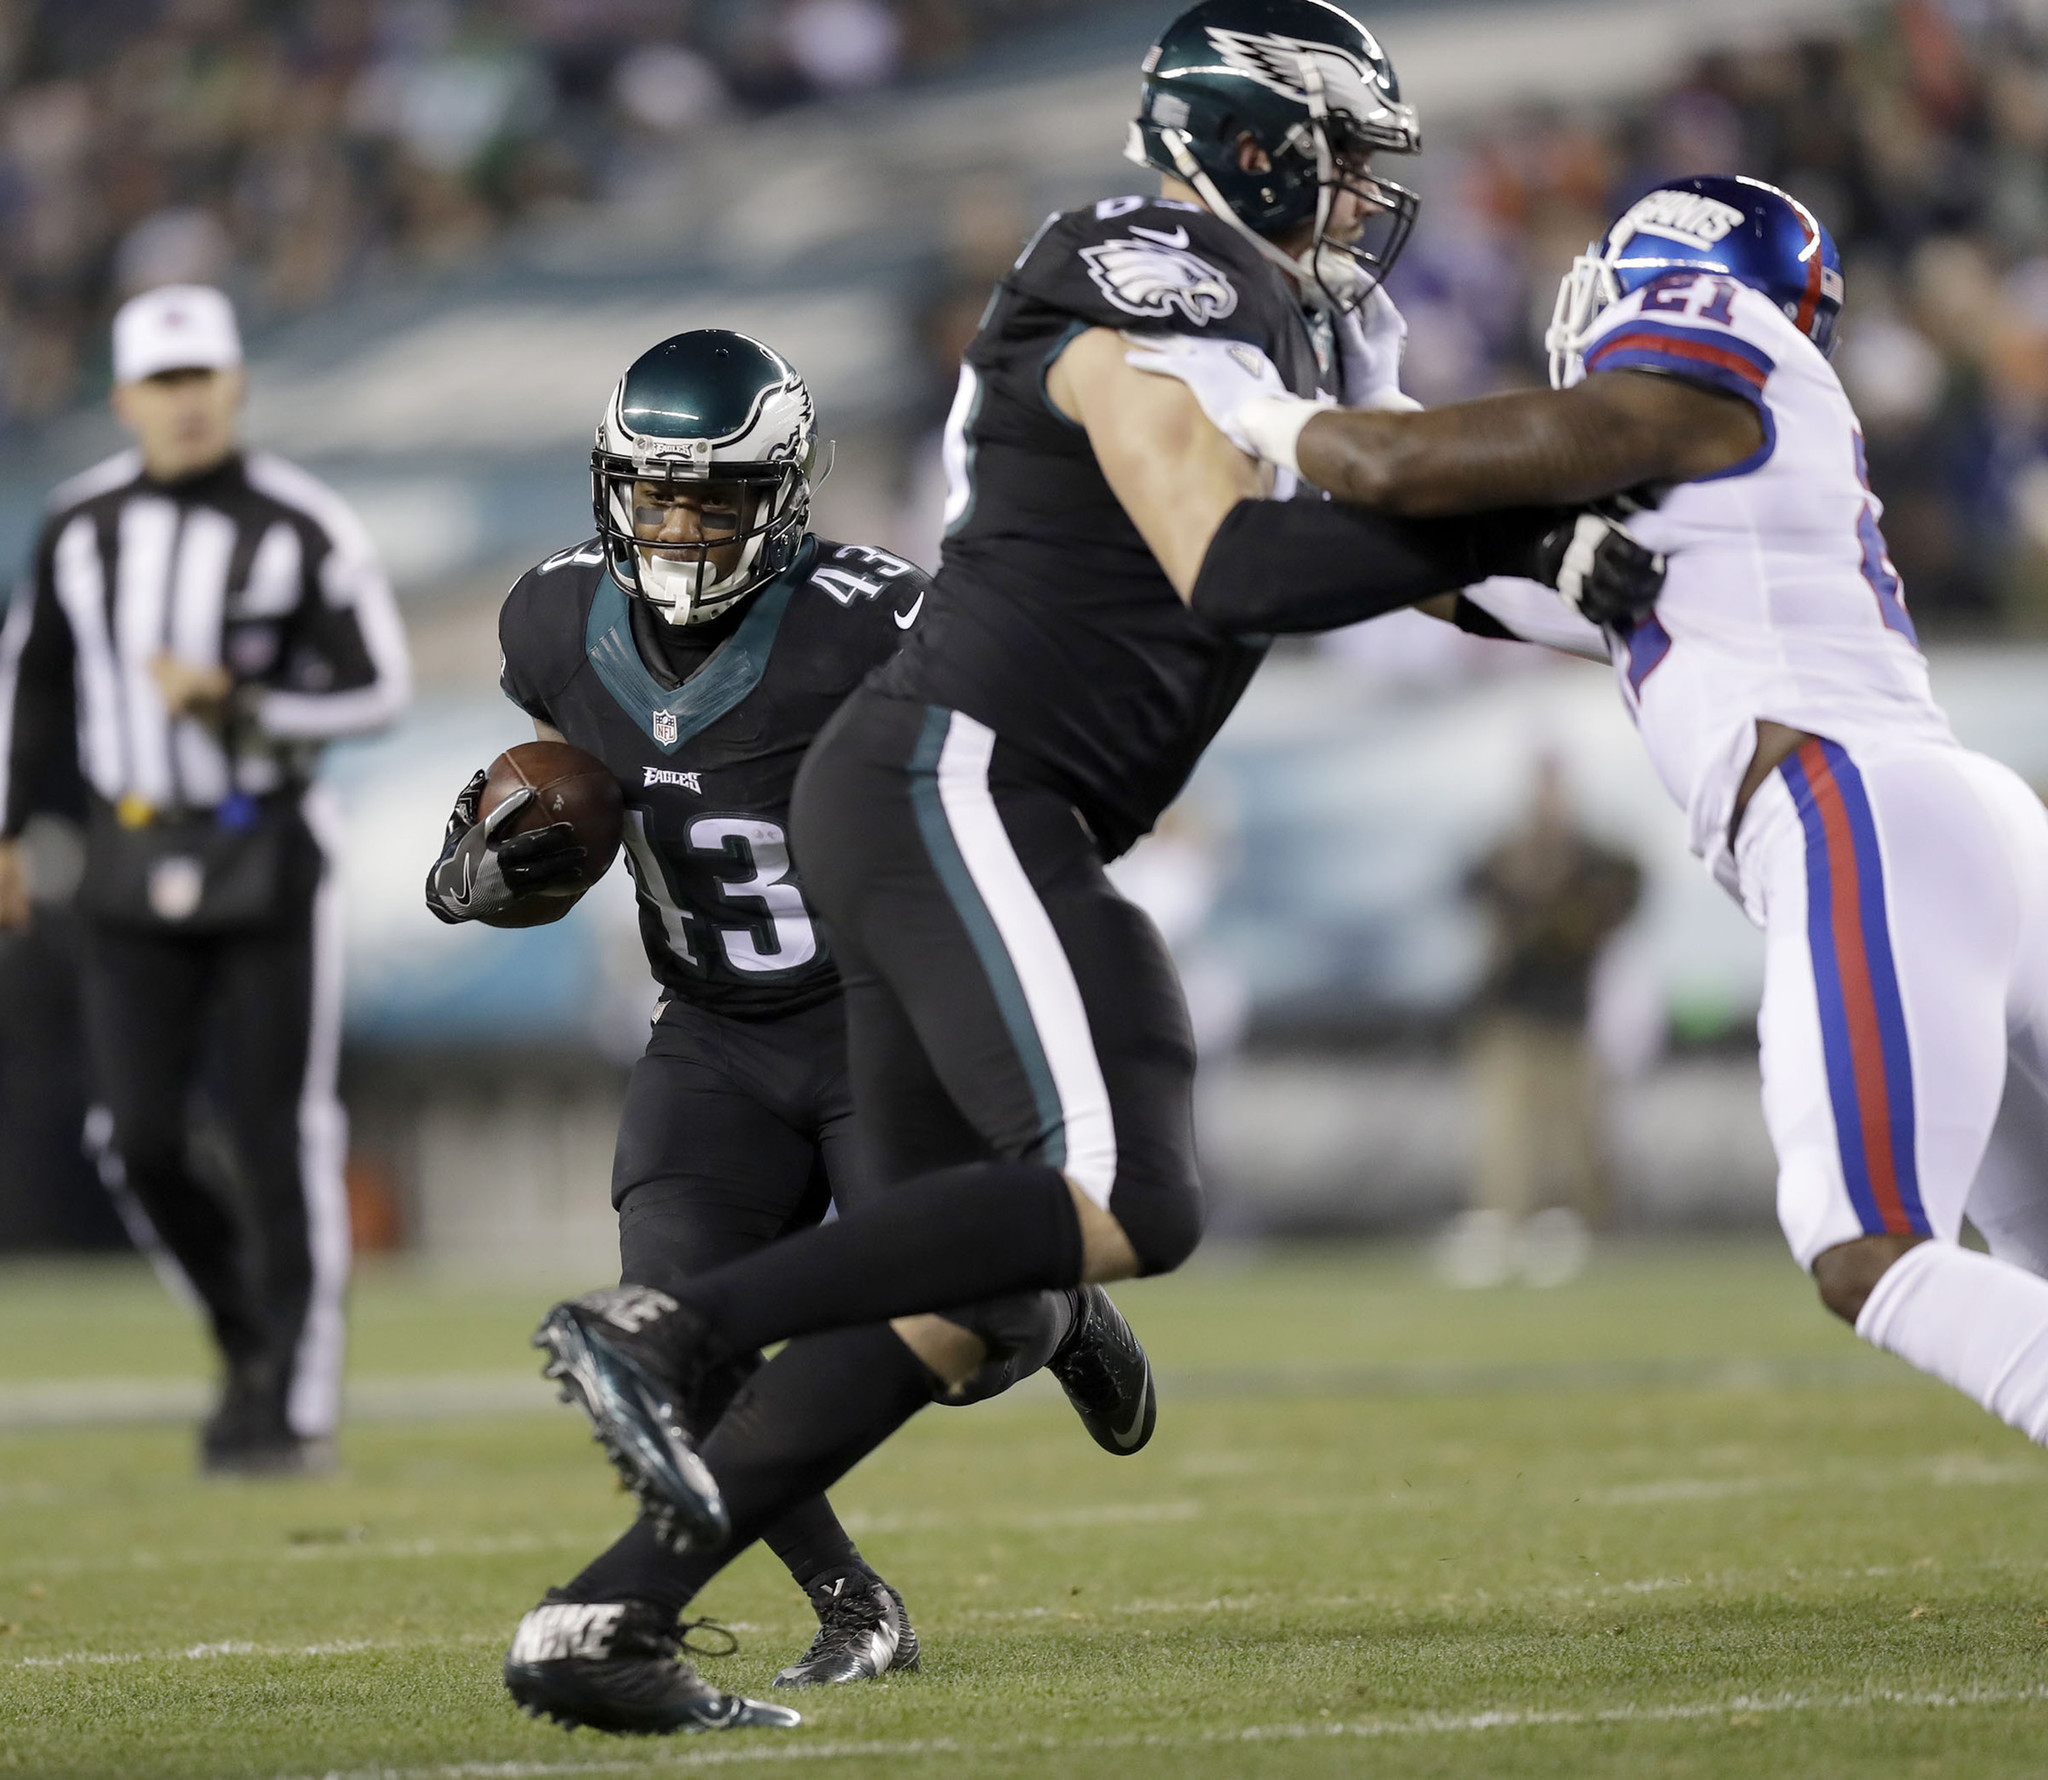 Monday Morning Quarterback No rust for Lane Johnson in solid